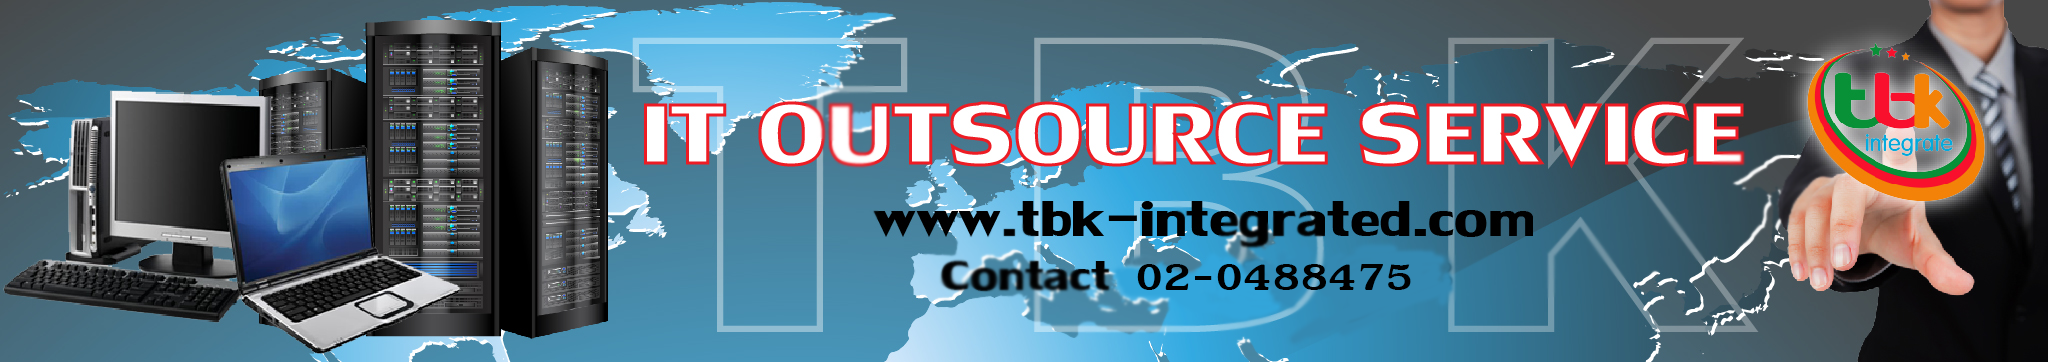 tbk itoutsource service